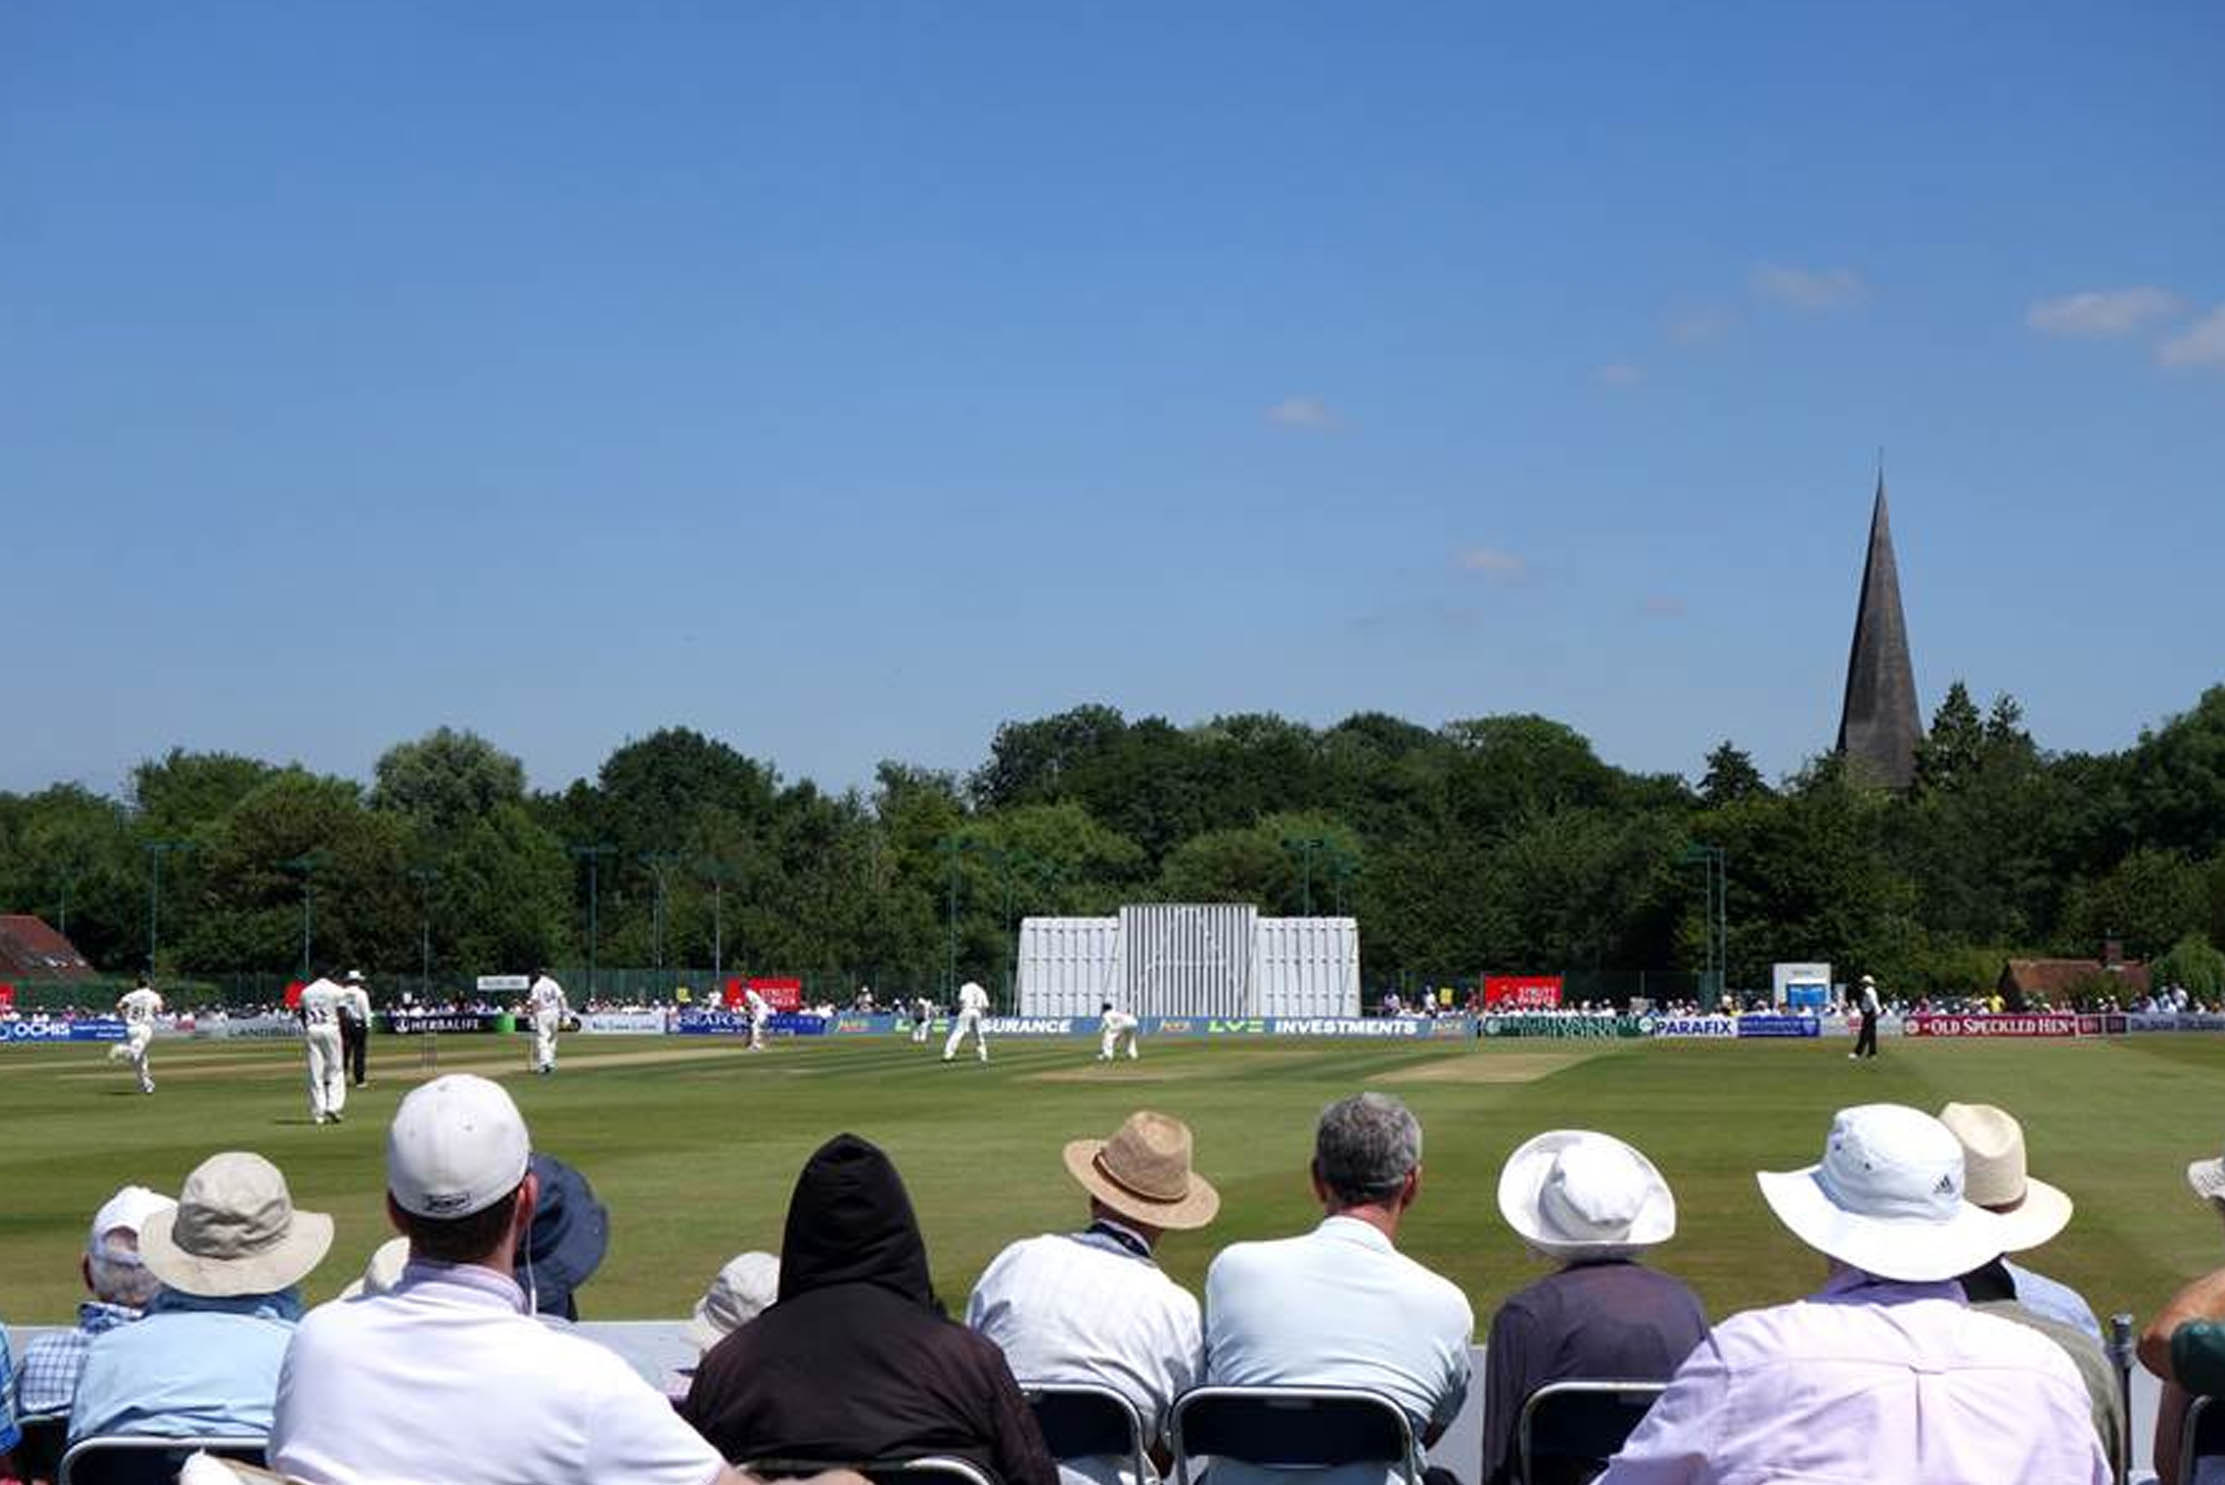 Sussex Cricket have confirmed any individual tickets purchased for Sussex matches in this year's Blast, County Championship and One-Day Cup will be refunded